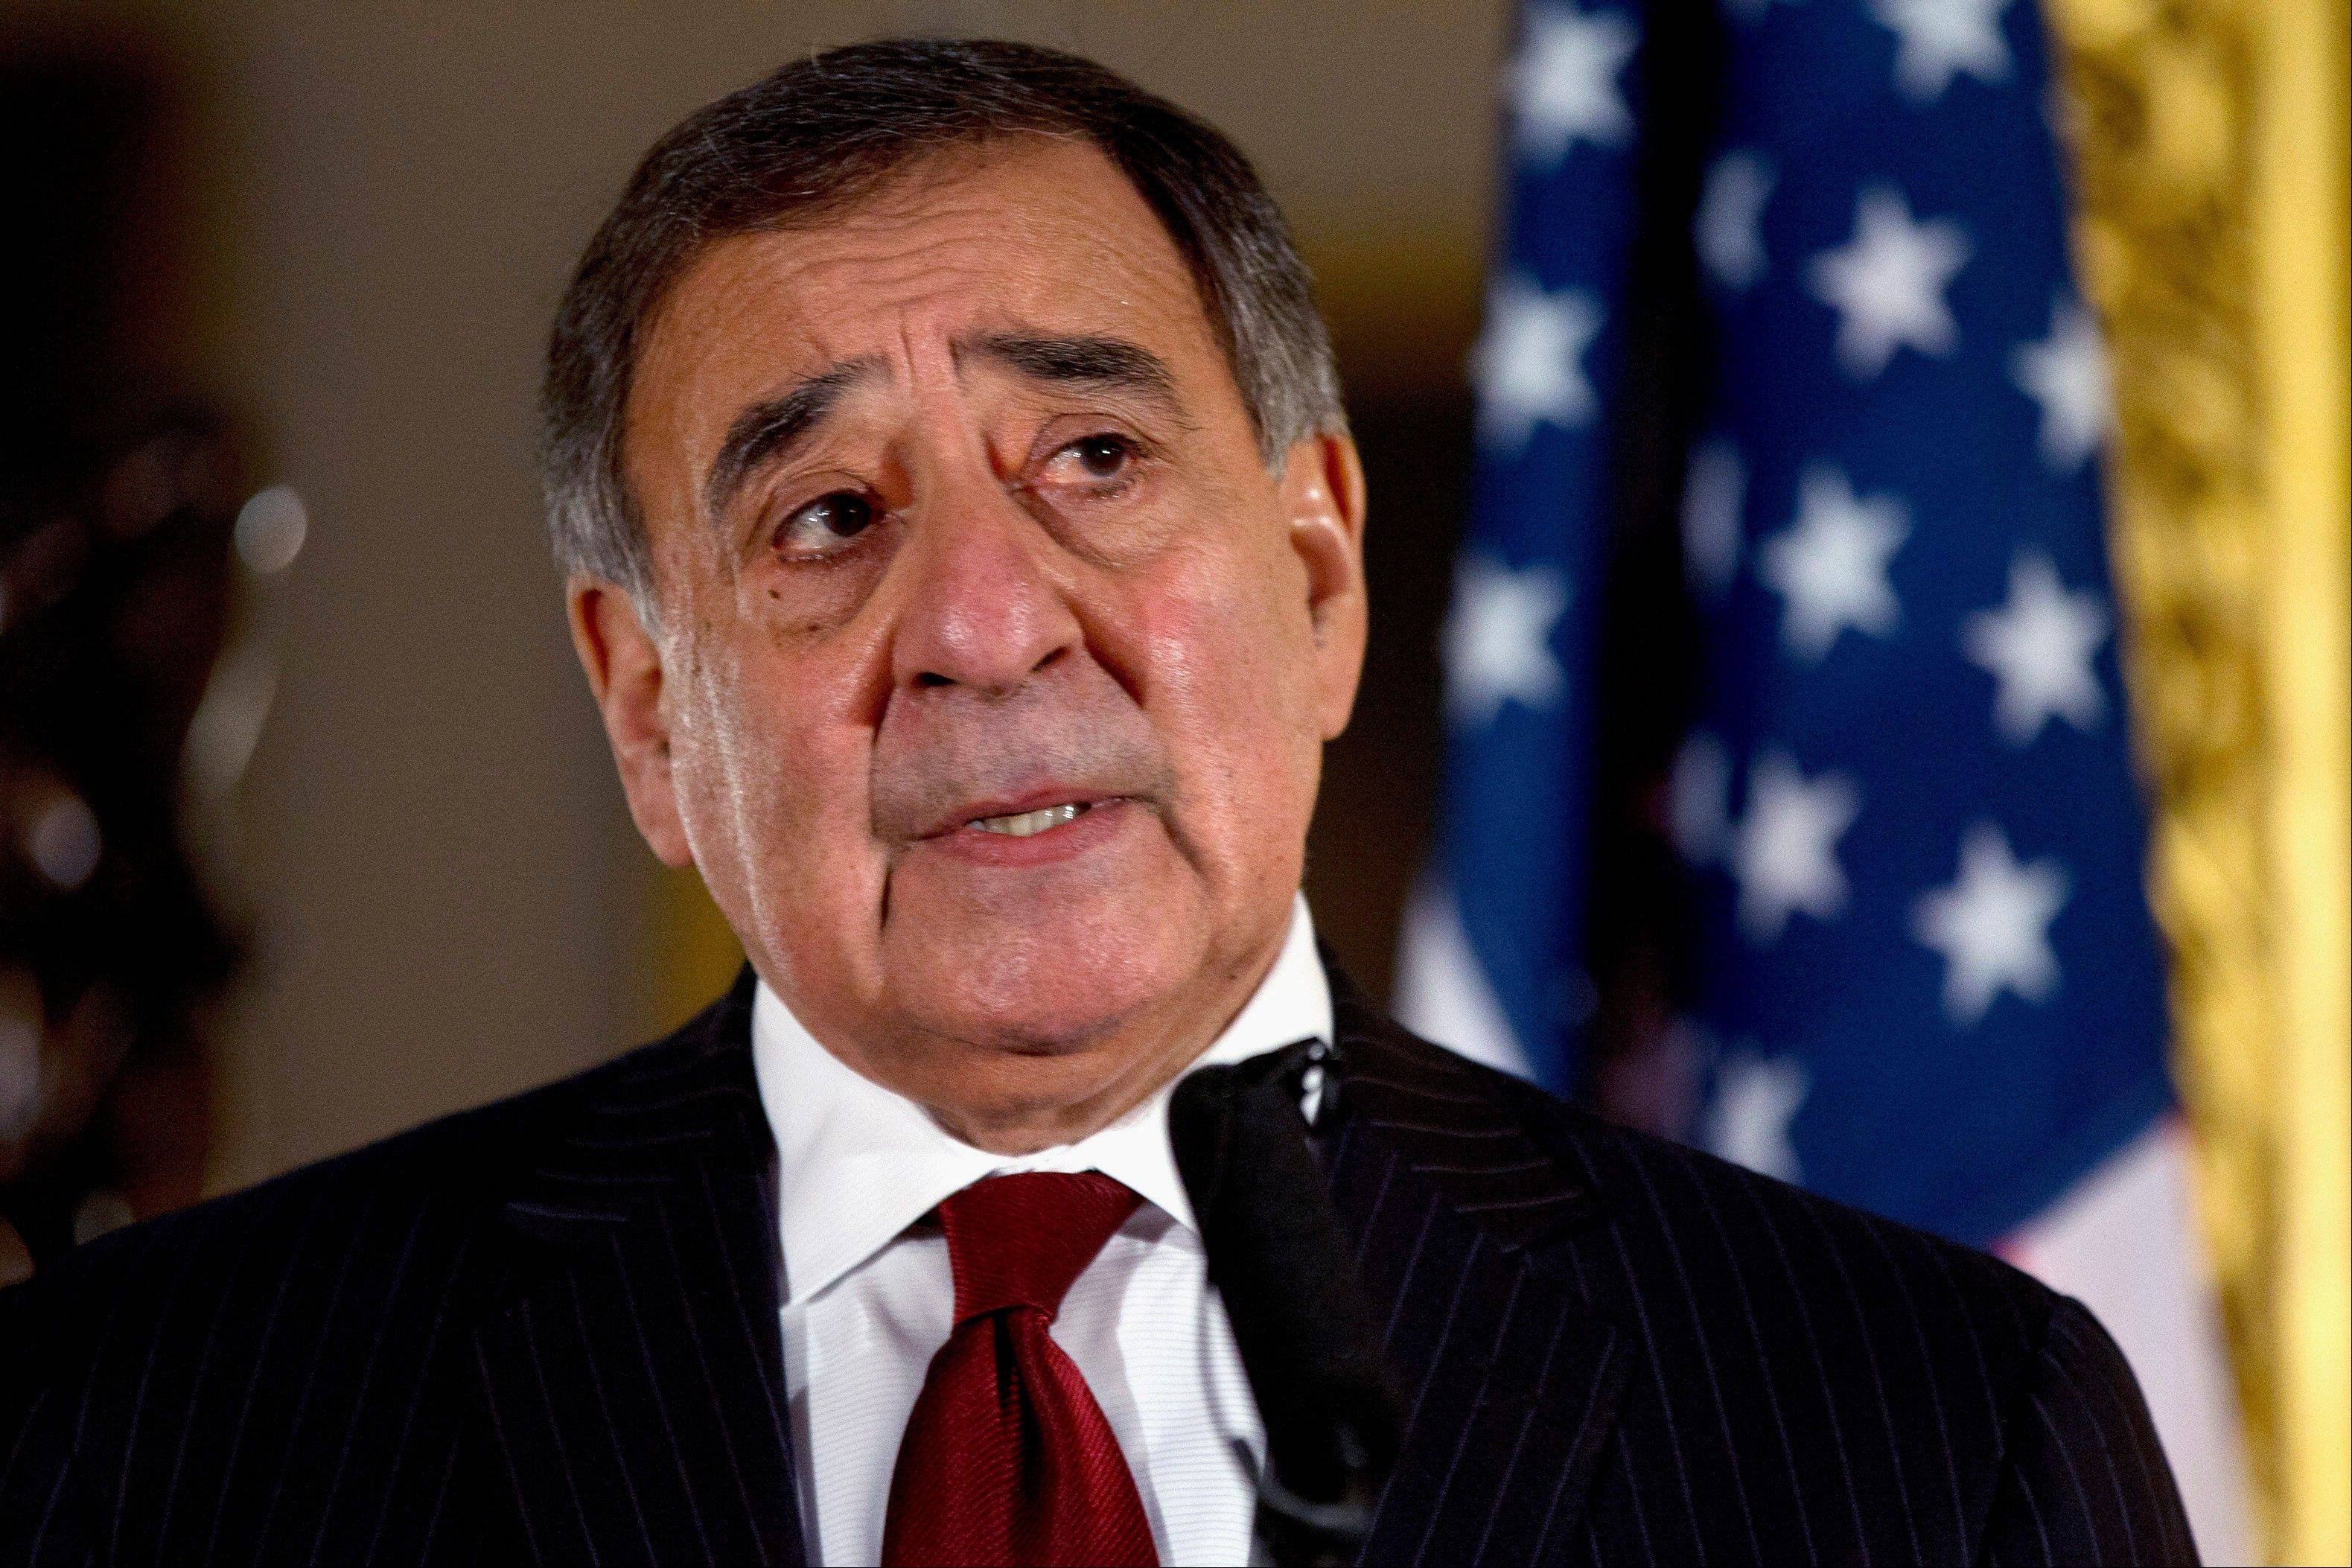 Defense Secretary Leon Panetta has removed the U.S. military ban on women in combat, opening thousands of front line positions, according to senior defense officials.